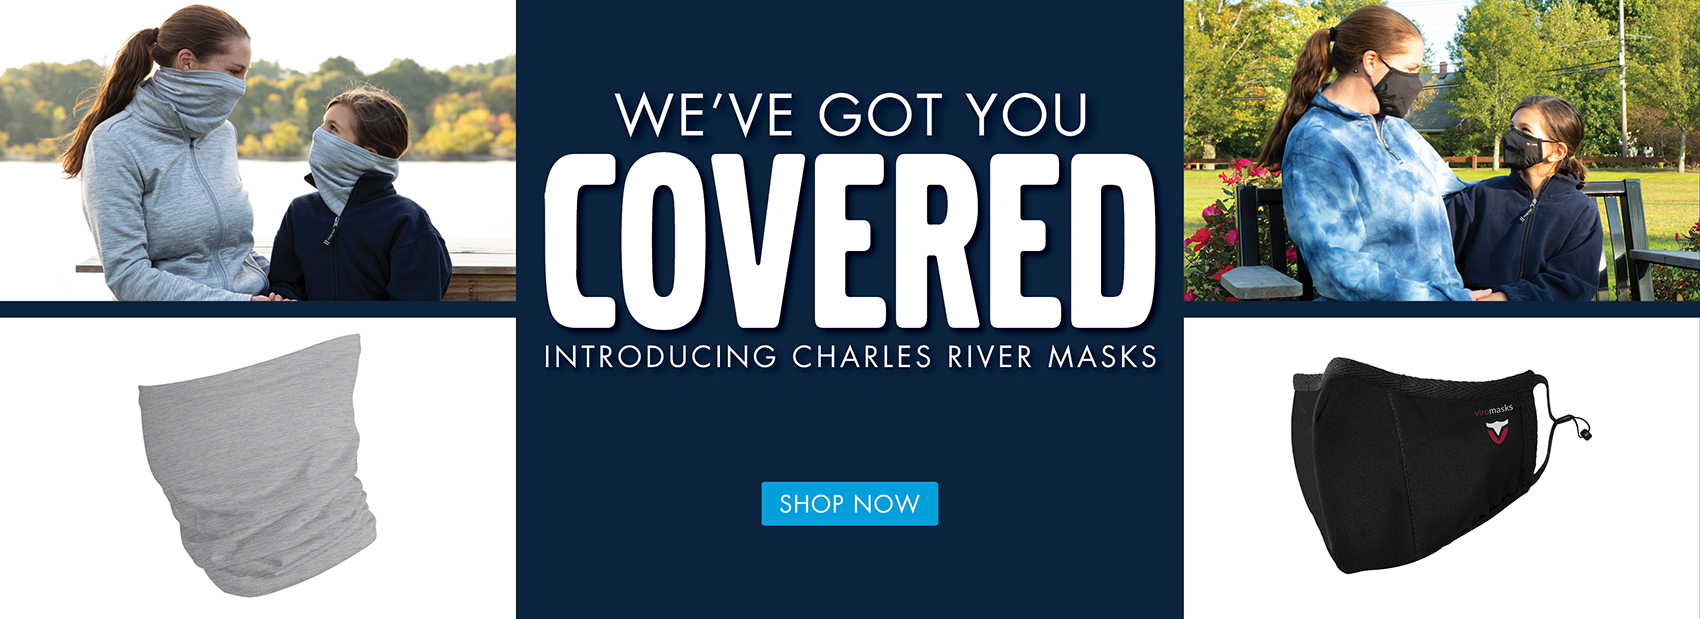 We've got you covered! Introducing Charles River Masks - Shop Now!